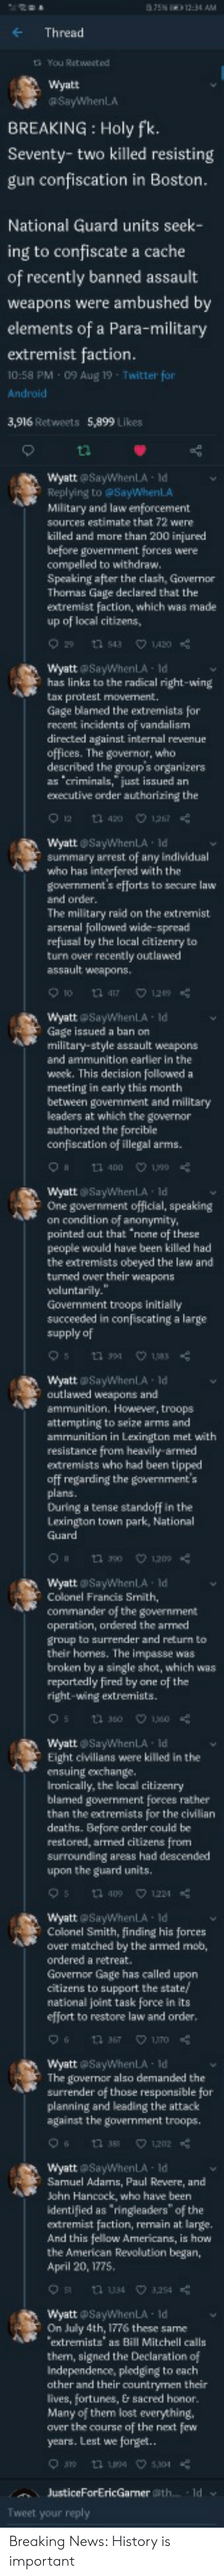 "deaths: a75N 1234 AM  Thread  ta You Retweet.ed  wyatt  aSayWhenLA  BREAKING Holy fk.  Seventy-two killed resisting  gun confiscation in Boston.  National Guard units seek-  ing to confiscate a cache  of recently banned assault  weapons were ambushed by  elements of a Para-military  extremist faction.  10:58 PM 09 Aug 19 Twitter for  Android  3,916 Retweets 5,899 Likes  Wyatt @SayWhenLA ld  Replying to @SayWhenLA  Military and law enforcement  sources estimate that 72 were-  killed and more than 200 injured  before government forces were  compelled to withdraw.  Speaking after the clash, Governor  Thomas Gage declared that the  extremist faction, which was made  up of local citizens,  29 tn 543  1,420  Wyatt @SayWhenLA Id  has links to the radical right-wing  tax protest movement.  Gage blamed the extremists for  recent incidents of vandalism  directed against internal revenue  offices. The governor, who  described the group's organizers  as 'criminals,"" just issued an  executive order authorizing the  12t 420 1267  wyatt SayWhenLA ld  summary arrest of any individual  who has interfered with the  government's efforts to secure law  and order.  The military raid on the extremist  arsenal followed wide-spread  refusal by the local citizenry to  turn over recently outlawed  assault weapons  1n 417  129  WyattSayWhenLA Id  Gage issued a ban on  military-style assault weapons  and ammunition earlier in the  woek. This decision followed a  meeting in early this month  between govermment and military  leaders at which the governor  authorized the forcible  confiscation of illegal arms.  1 400 190  Wyatt SayWhenLA ld  One government official, speaking  on condition of anonymity  pointed out that ""none of these  people would have been killed had  the extremists obeyed the law and  turned over their weapons  voluntarily.  Government troops initially  succeeded in confiscating a large  supply of  183  Wyatt SayWhenLA ld  outlawed weapons and  ammunition. However, troops  attempting to seize arms and  ammunition in Lexington met with  resistance from heavily armed  extremists who had been tipped  aff regarding the government's  plans.  During a tense standoff in the  Lexington town park, National  Guard  t 1209  1 0  Wyatt SayWhenLA Id  Colonel Francis Smith,  commander of the government  operation, ordered the armed  group to surrender and return to  their homes. The impasse was  broken by a single shot, which was  repartedly fired by one  of the  right-wing extremists.  tu 3s0 160  Q1360  Wyatt SayWhenLA Id  Eight civilians were killed in the  Aensuing exchange.  Ironically, the local citizenry  blamed government forces rather  than the extremists for the civilian  deaths. Before order could be  restored, armed citizens from  surrounding areas had descended  upon the guard units  1 409 1224  Wyatt @SayWhenLA Id  Colonel Smith, finding his forces  aver matched by the armed mob,  ordered a retreat.  Governor Gage has called upon  citizens to support the state  national joint task force in its  effort to restore law and order.  n 367  uTO  Wyatt @SayWhenLA Id  The governor also demanded the  surrender of those responsible for  planning and leading the attack  against the government troops  t 1202  6  n 38  WyattSayWhenLA Id  Samuel Adams, Paul Revere, and  John Hancock, who have been  identified as ringleaders"" of the  extremist faction, remain at large.  And this fellow Americans, is how  the American Revolution began,  April 20, 1775  n u34 254  Wyatt SayWhenLA Id  On July 4th, 1776 these same  extremists as Bill Mitchell calls  them, signed the Declaration of  Independence, pledging to each  ather and their countrymen their  lives, fortunes, & sacred honor.  Many of them lost everything,  aver the course of the next few  years. Lest we forget..  un 504  JusticeForEricGarmer @th.. Id  Tweet your reply Breaking News: History is important"